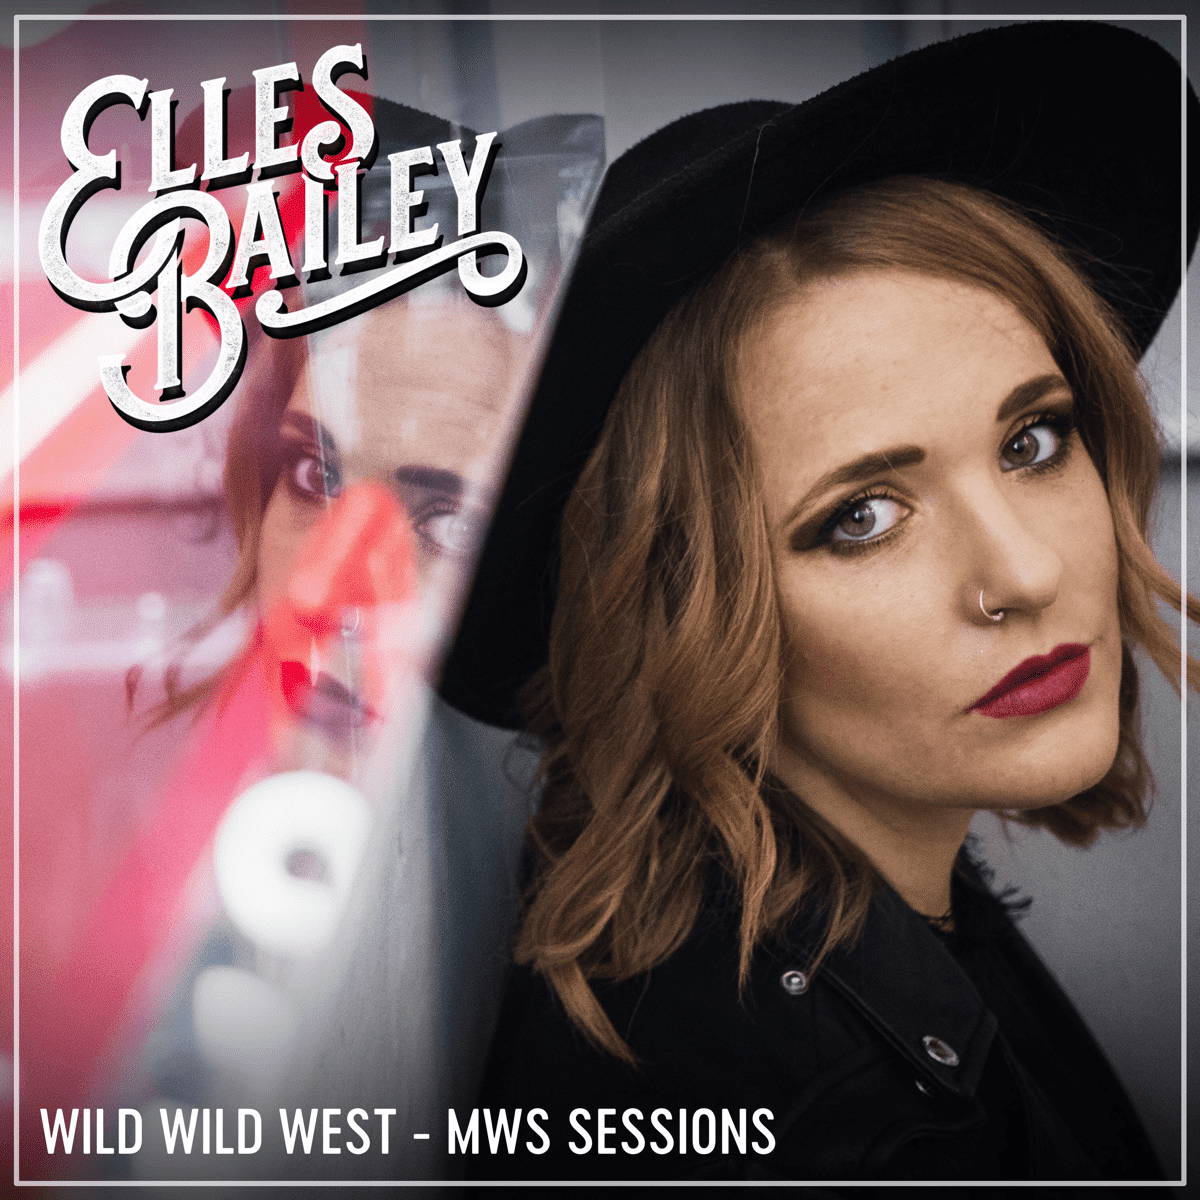 Cover Art for Elles Bailey's song Wild Wild West